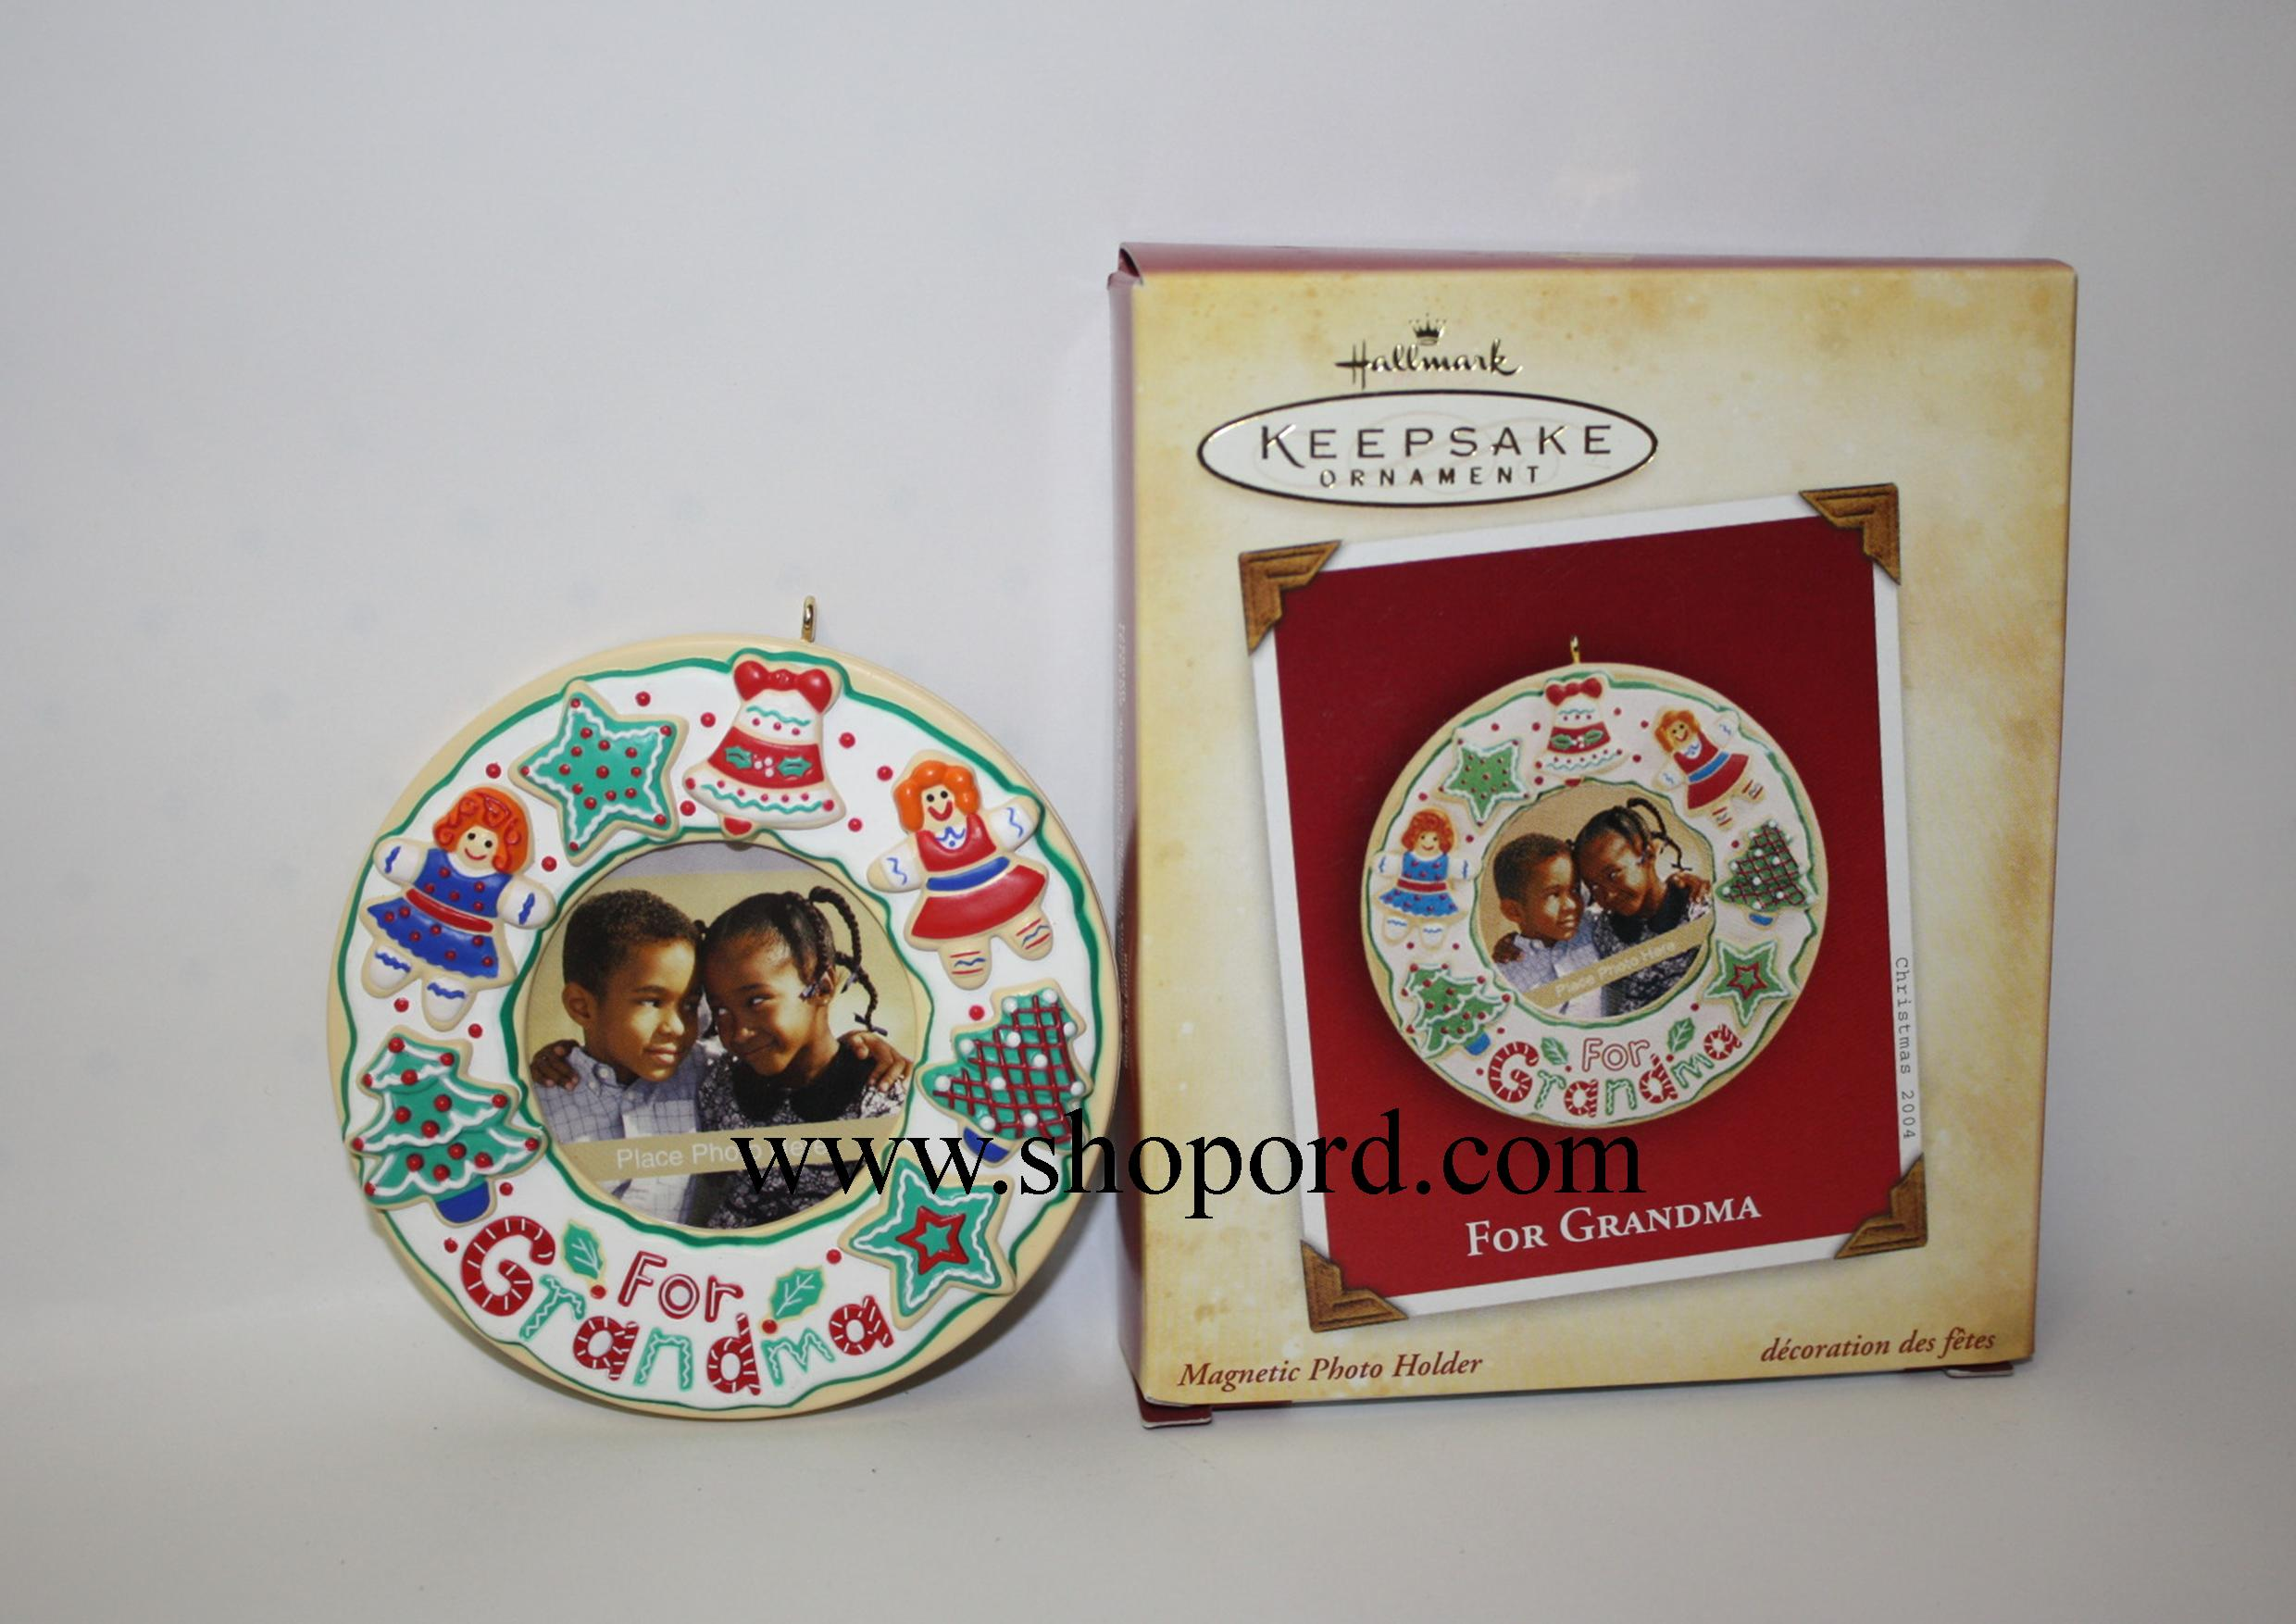 Hallmark 2004 For Grandma Magnetic Photo Holder Ornament